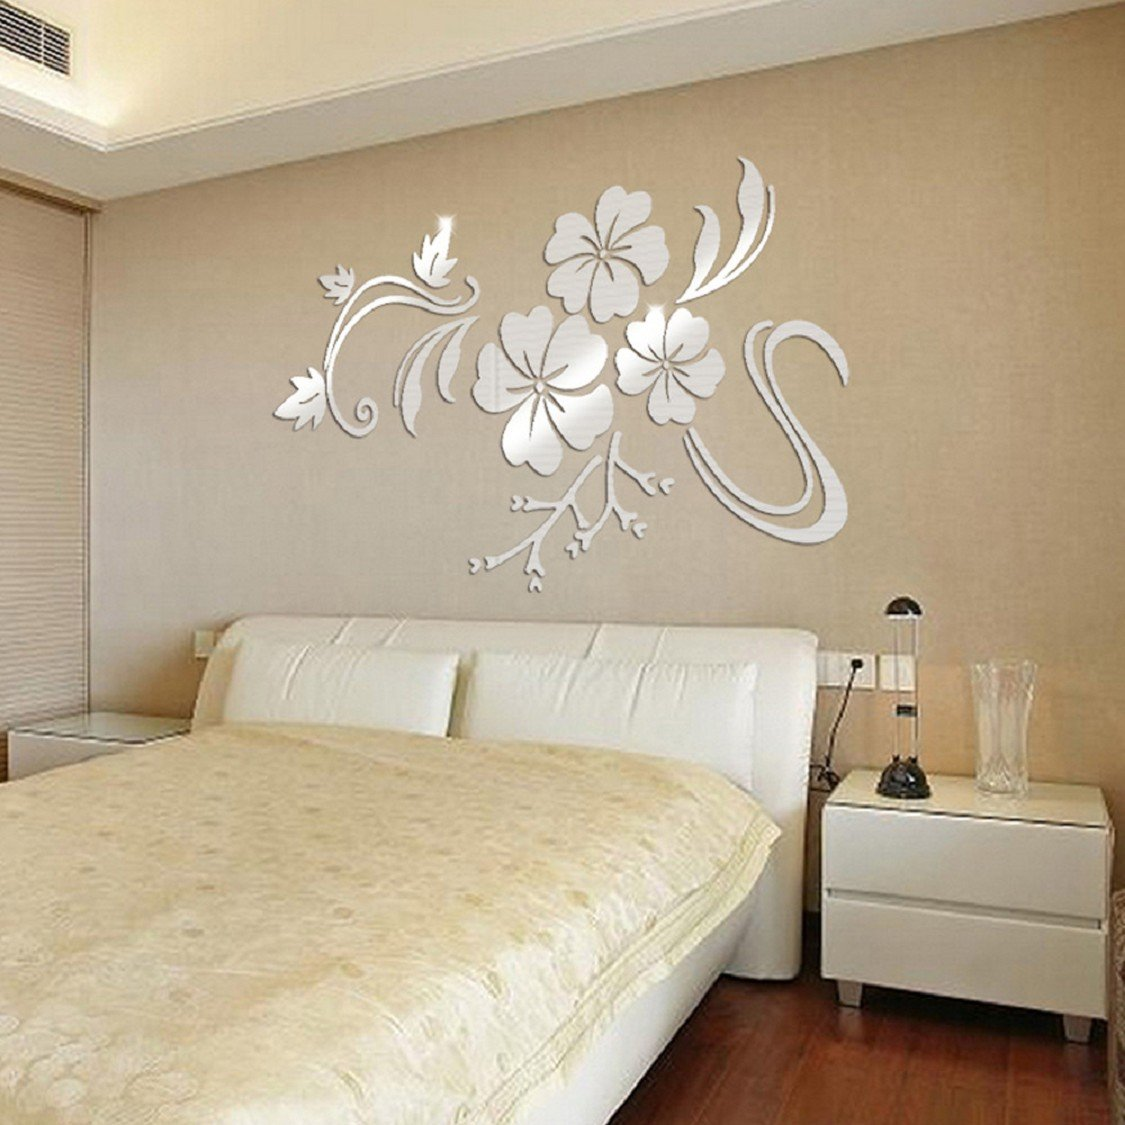 ikevan 1set acrylic art 3d mirror flower wall stickers diy home ikevan 1set acrylic art 3d mirror flower wall stickers diy home wall room decals decor sofa tv setting wall removable wall stickers 78x60cm sliver